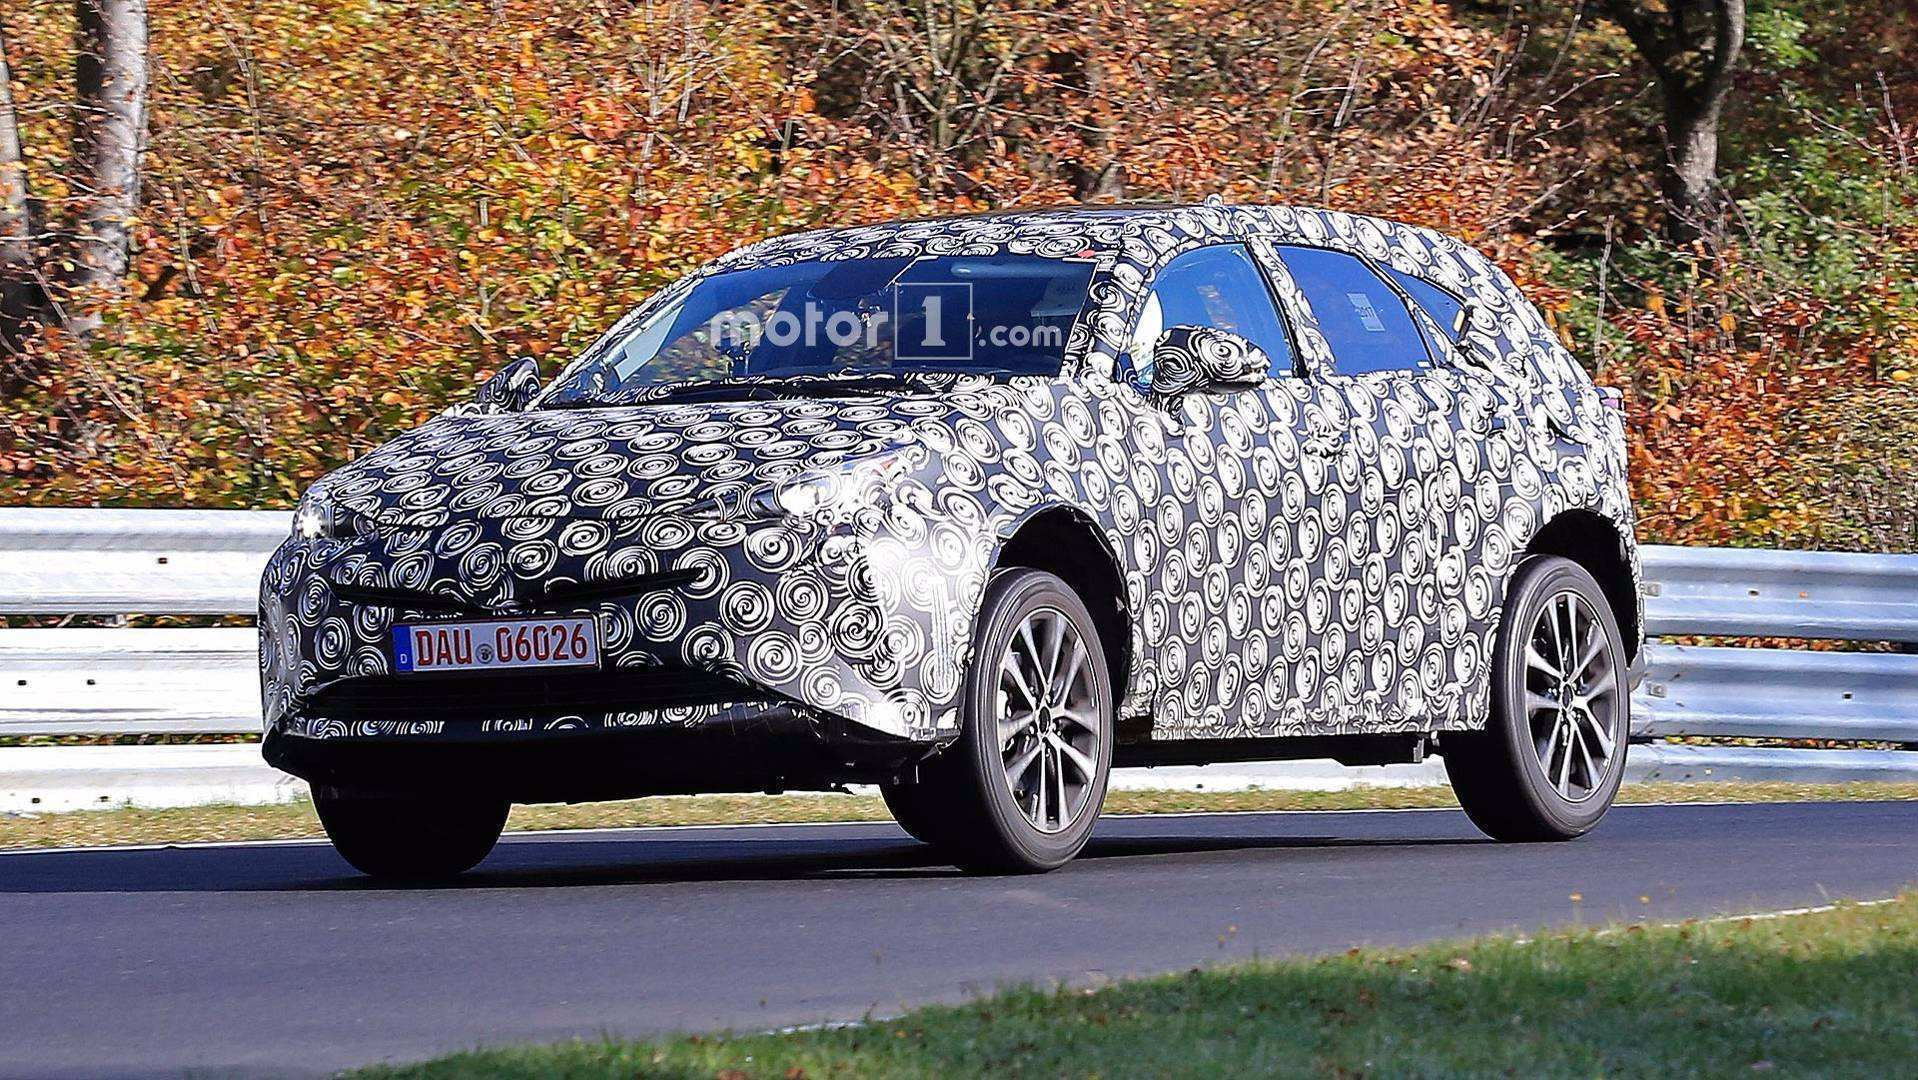 90 New 2019 Spy Shots Toyota Prius Review And Release Date